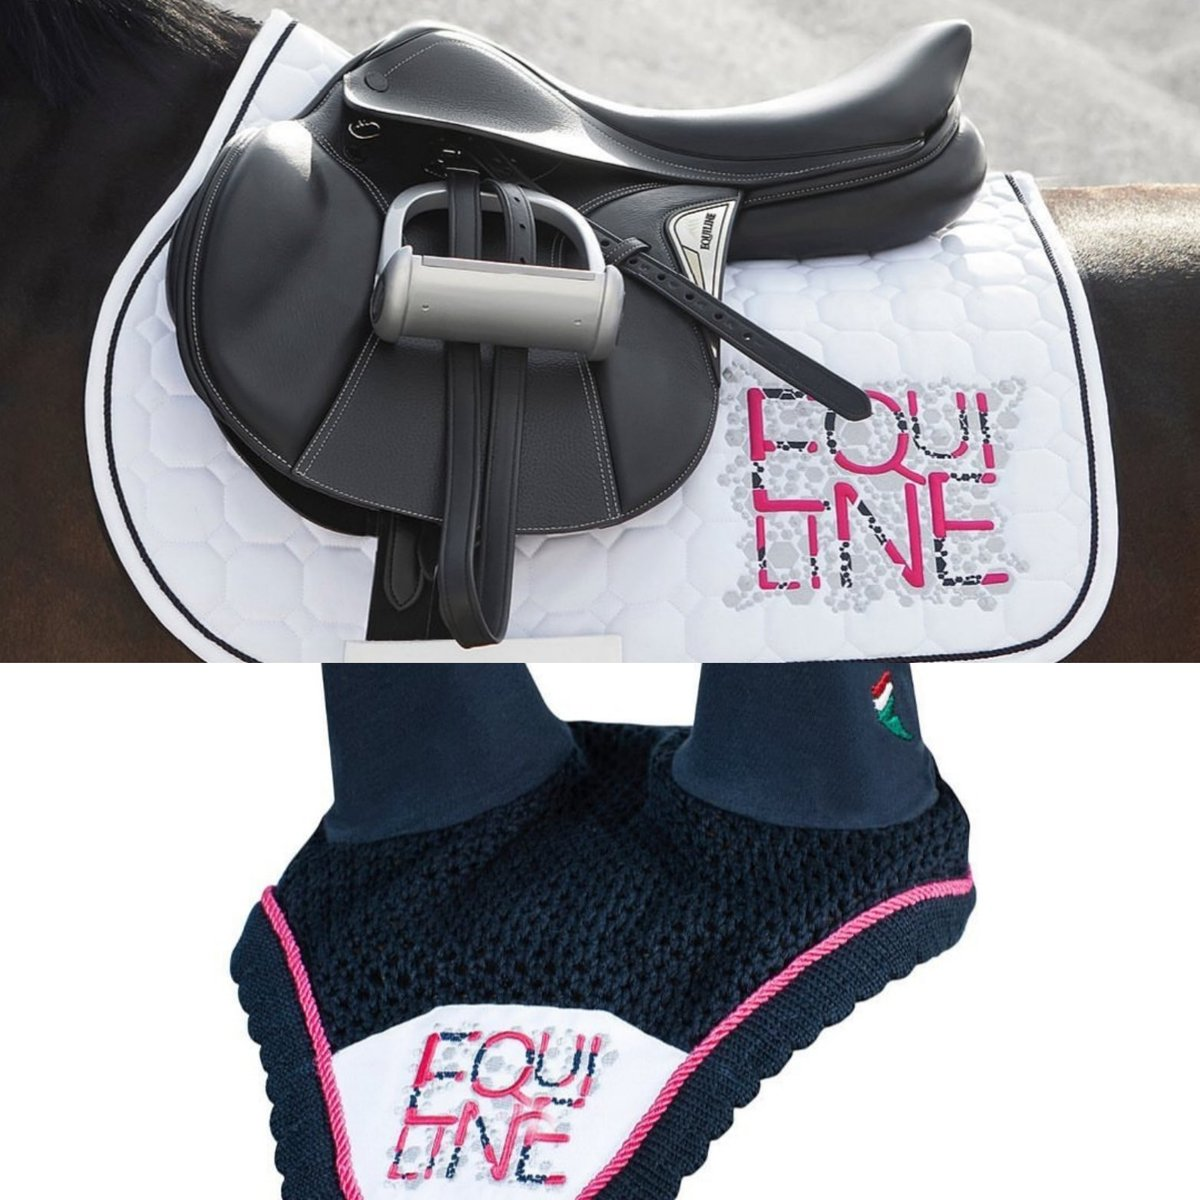 Let's concentrate on good news today at DE and this combination from #Equiline has brought a huge smile to our faces! #Marghe jumping saddle with the #Cupid saddlepad and matching earnet is available now! Fresh and gorgeous - just what we need to lift our spirits pic.twitter.com/uo7aITHNlt